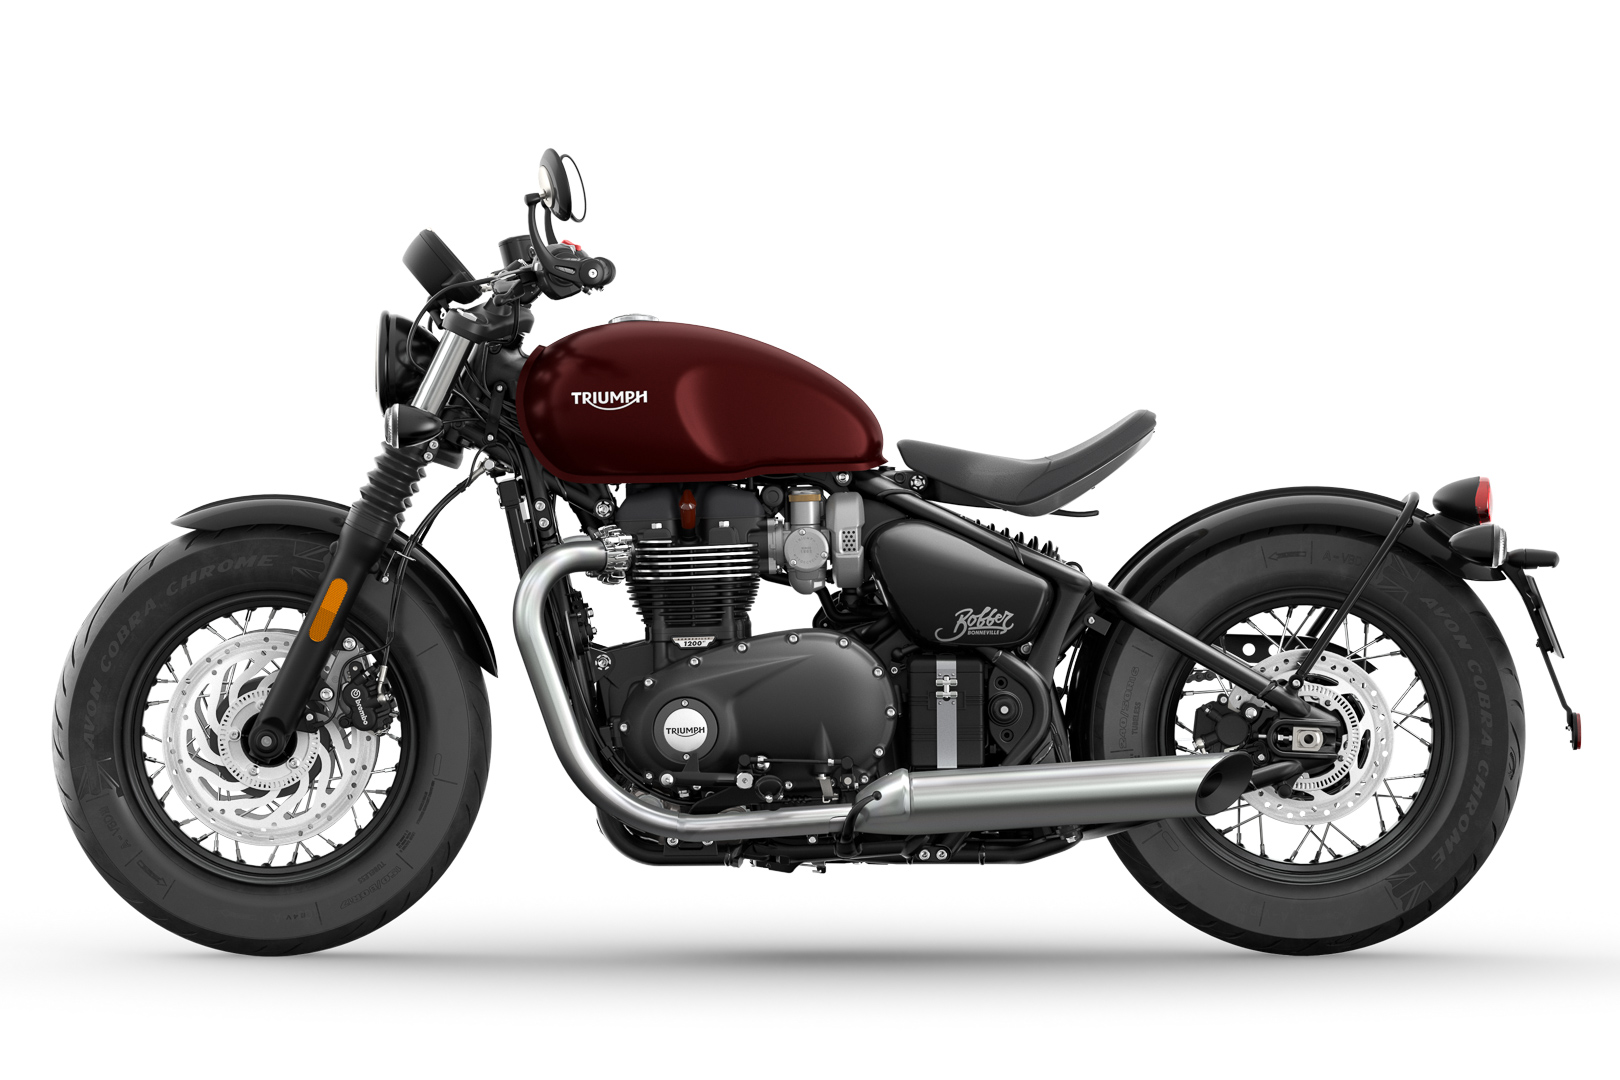 2022 Triumph Bonneville Bobber First Look (11 Fast Facts)